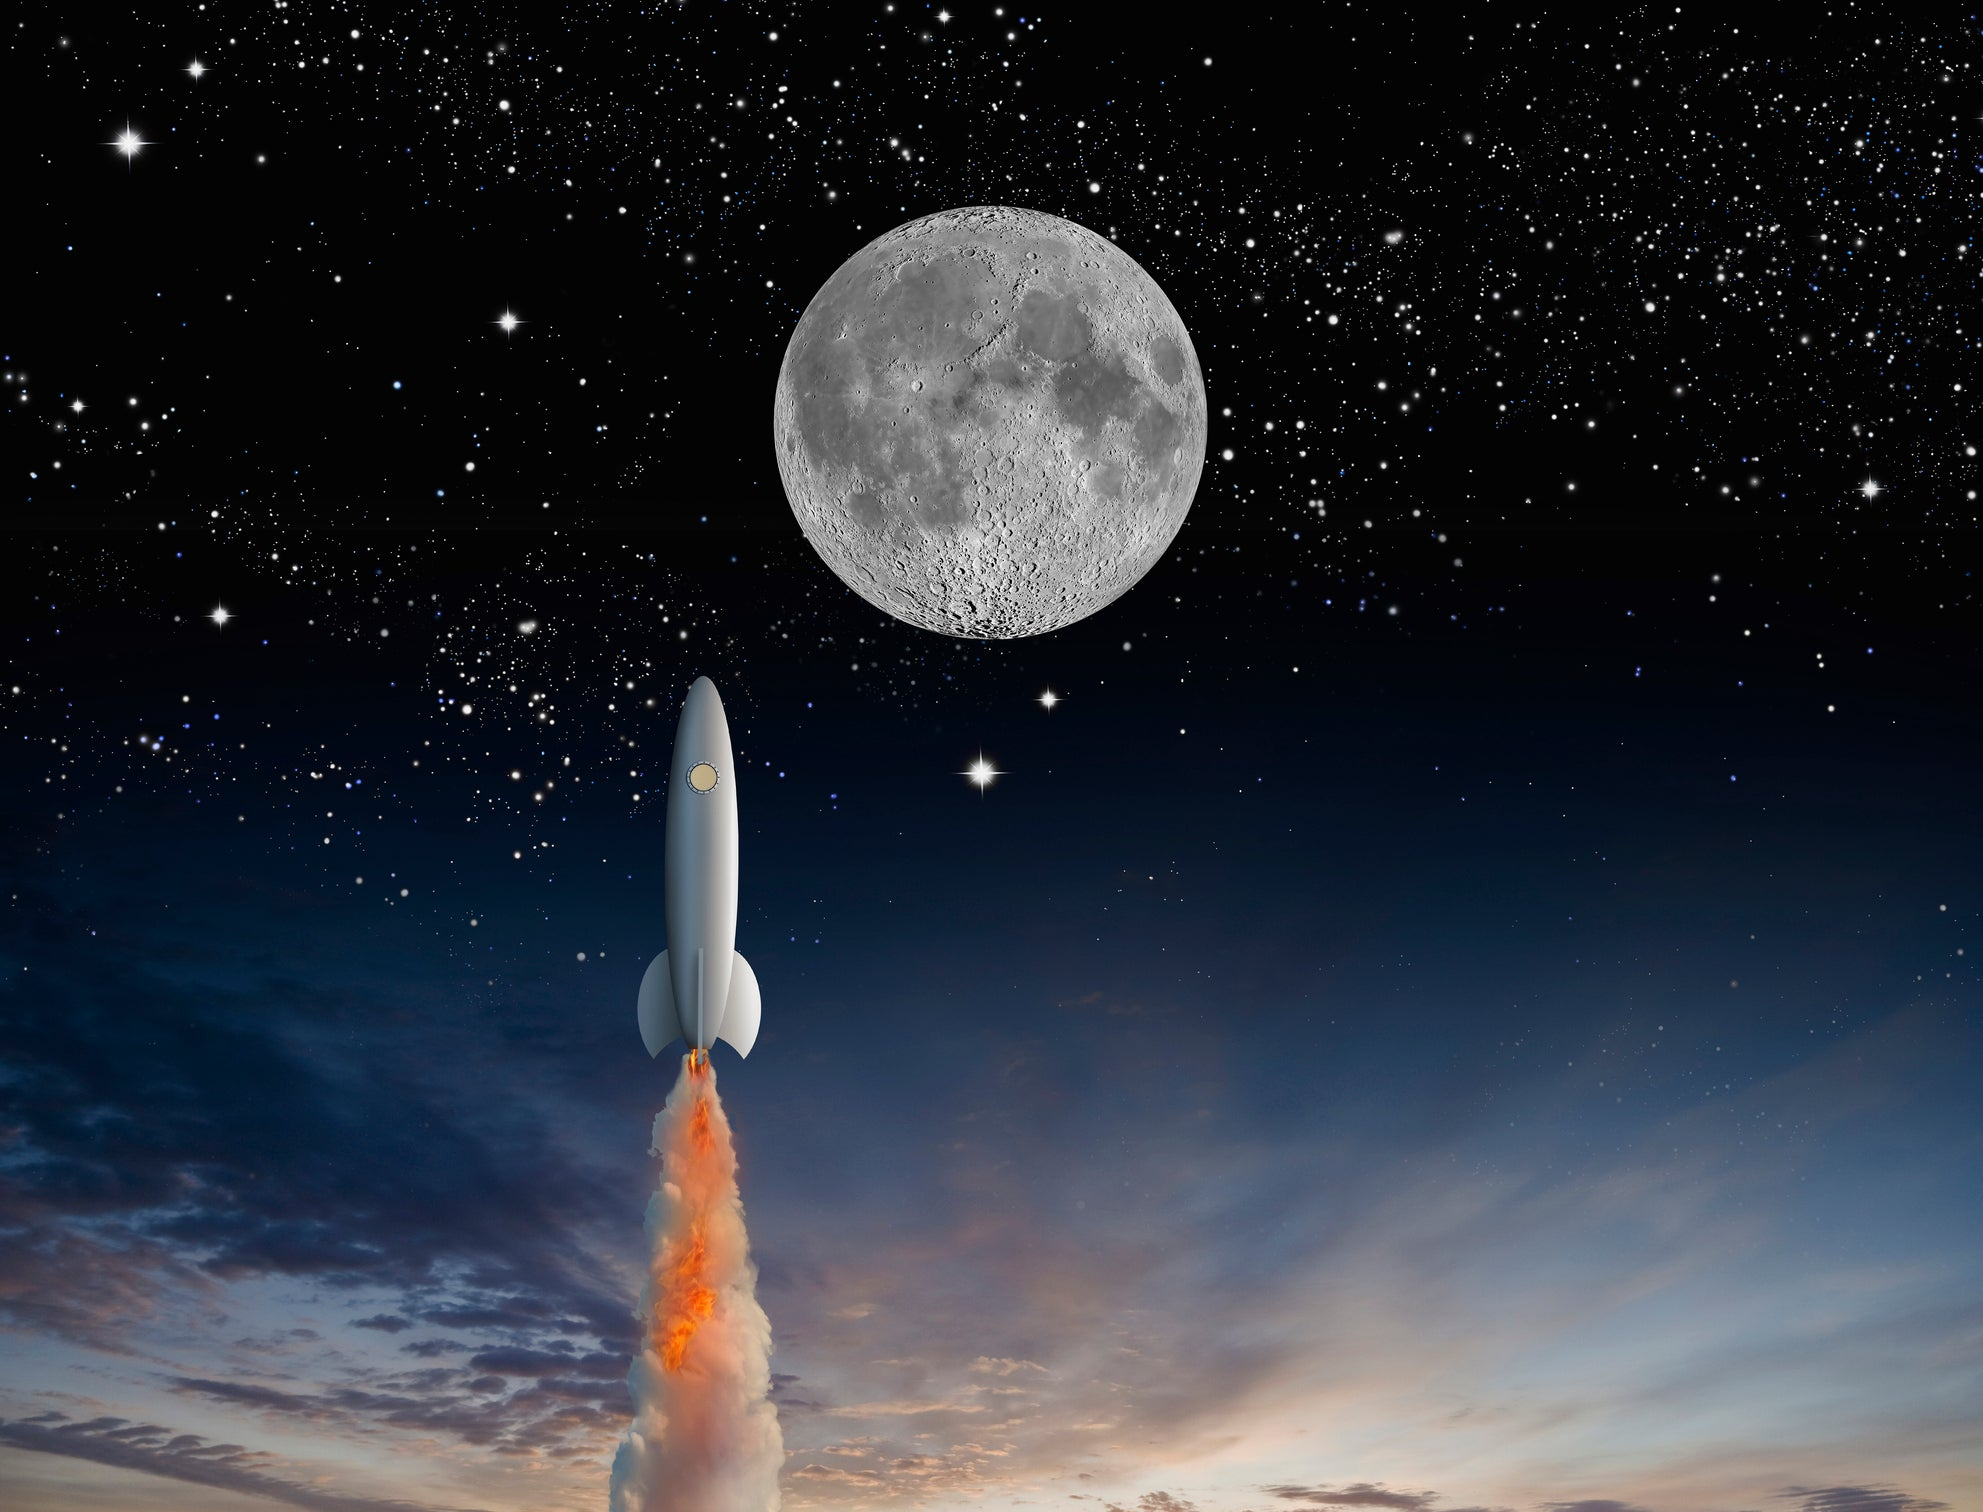 Don't Sweat a Market Crash -- These 7 Stocks Could Go to the Moon